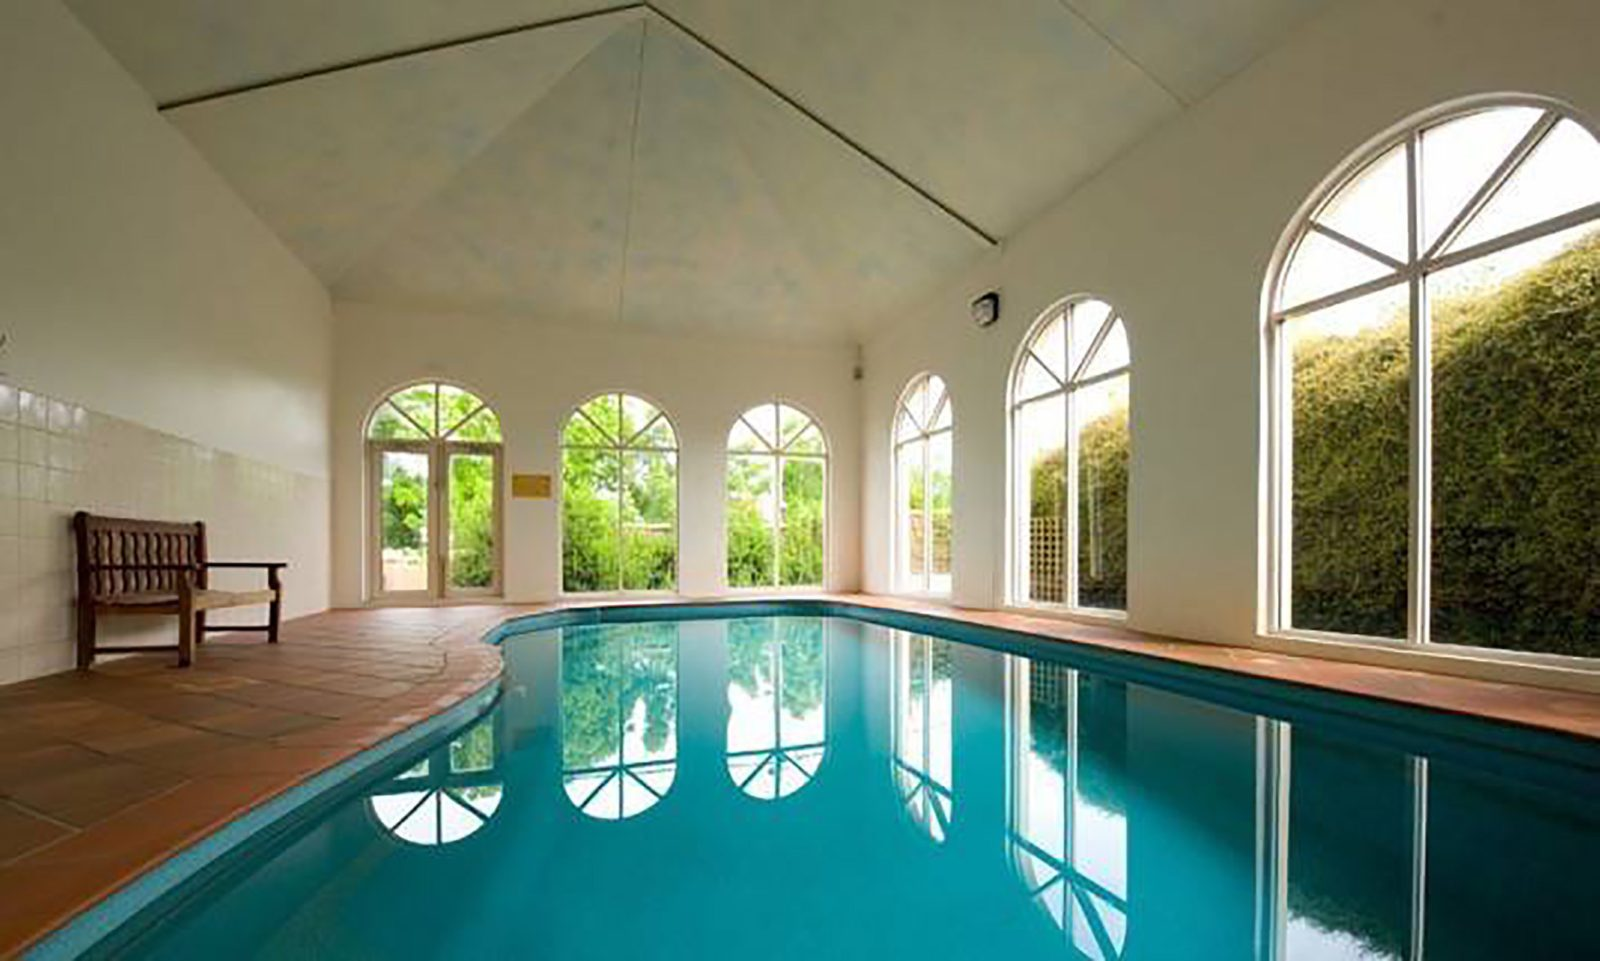 Courthouse Zen Suite indoor heated pool and spa view